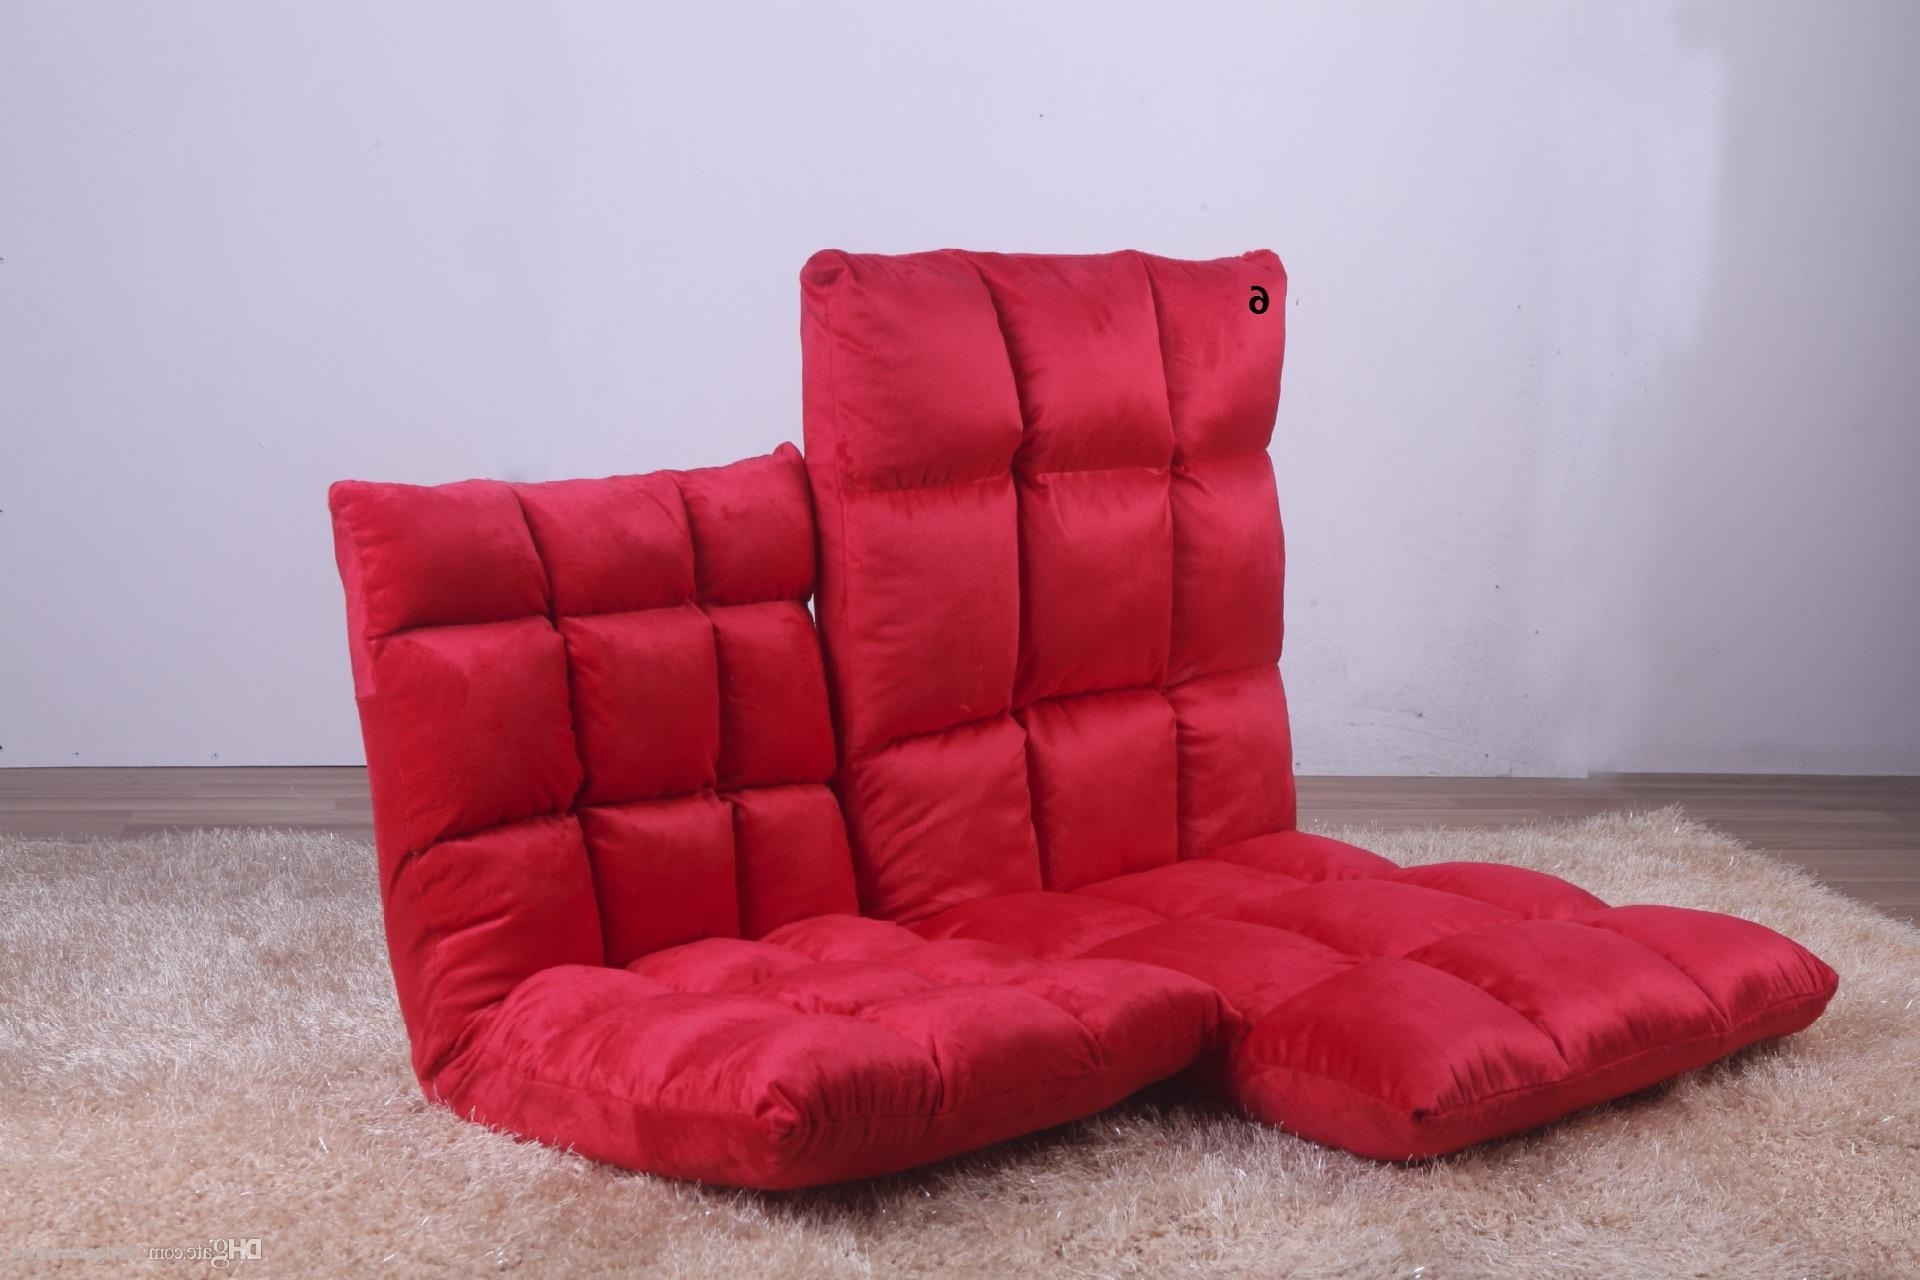 2018 6 Gears Lazy Sofa Couch Couch Rice Small Single Sofa Chair Intended For Trendy Lazy Sofa Chairs (View 4 of 15)